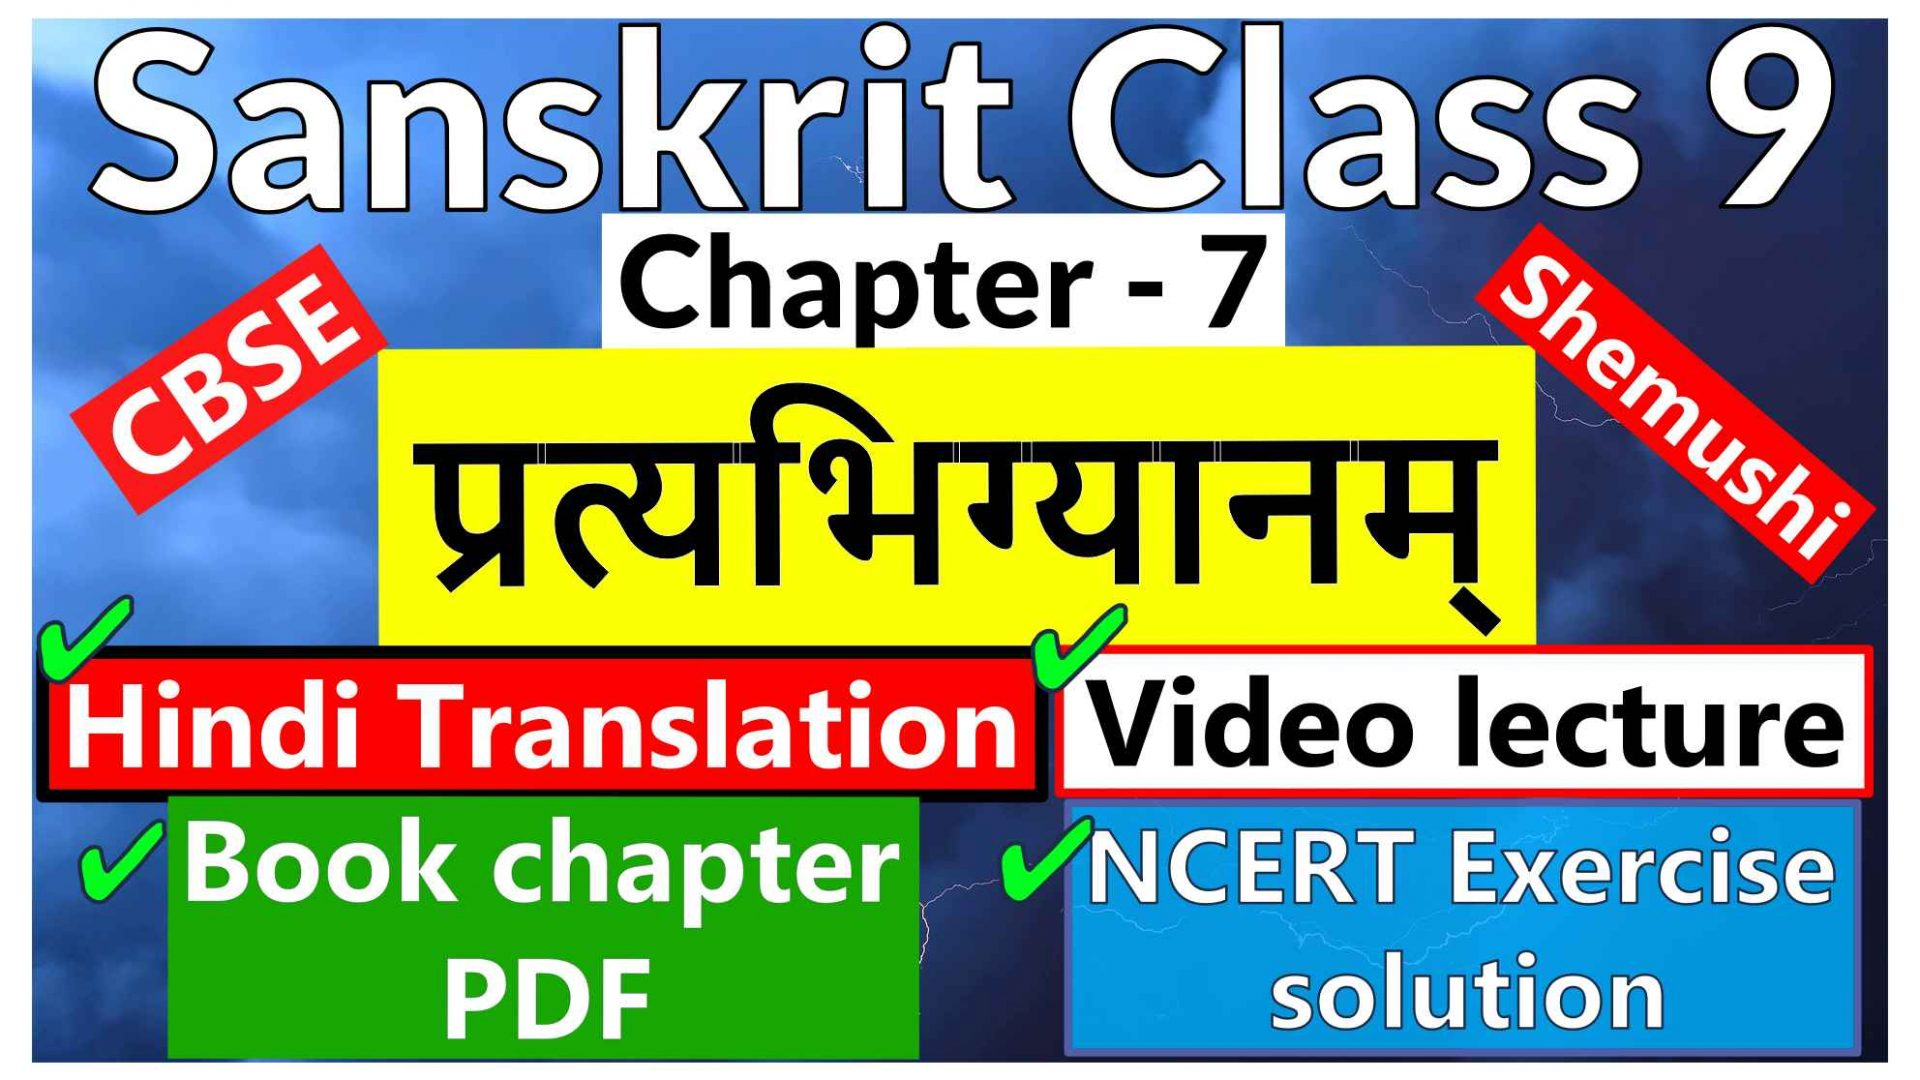 Sanskrit Class 9-Chapter 7 प्रत्यभिग्यानम् - Hindi Translation, Video lecture, NCERT Exercise solution (Question-Answer), Book chapter PDF